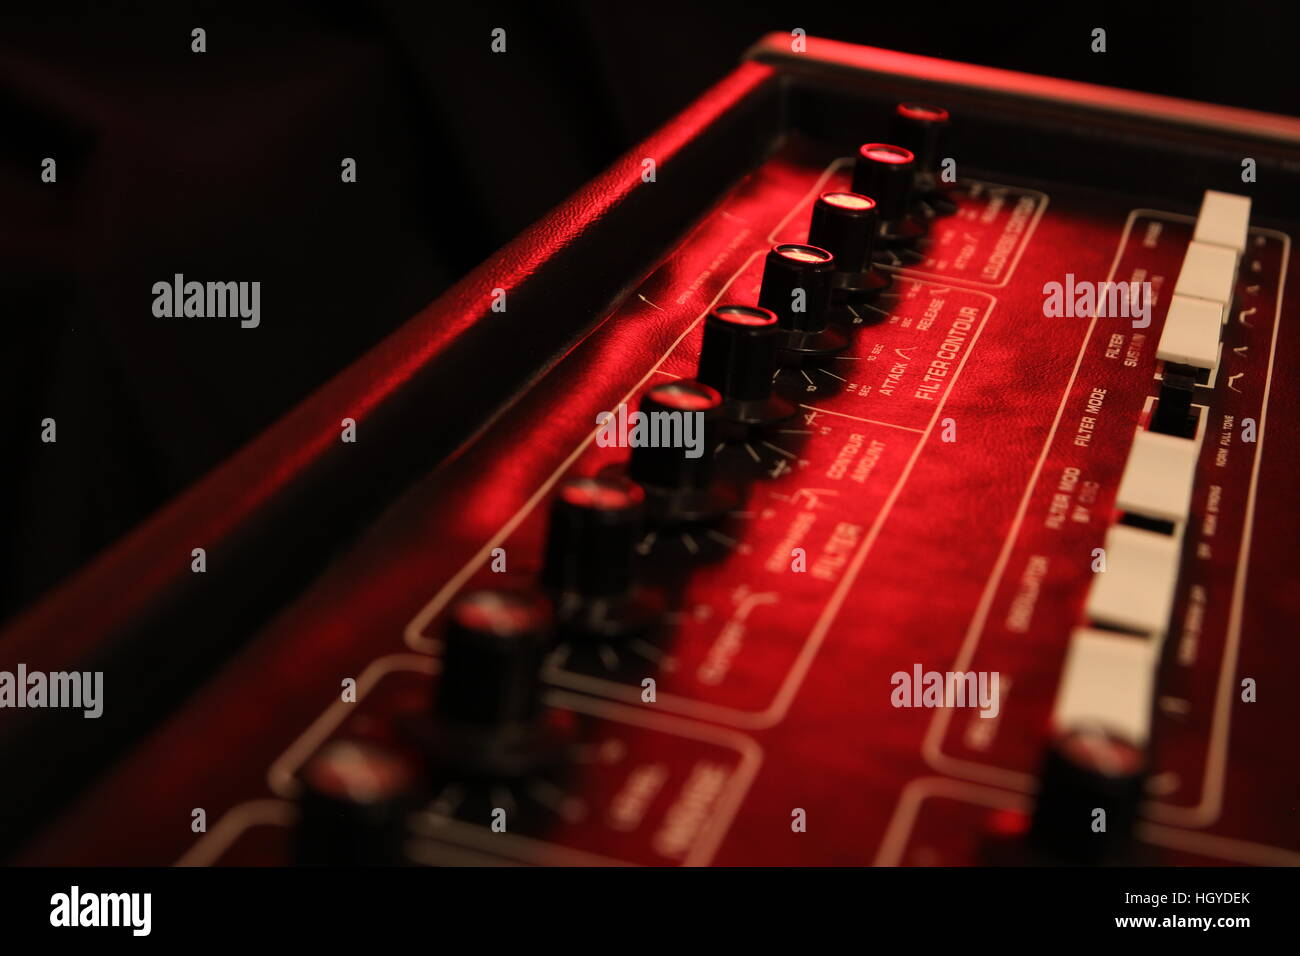 Controls of a retro analog music synth in red light - Stock Image